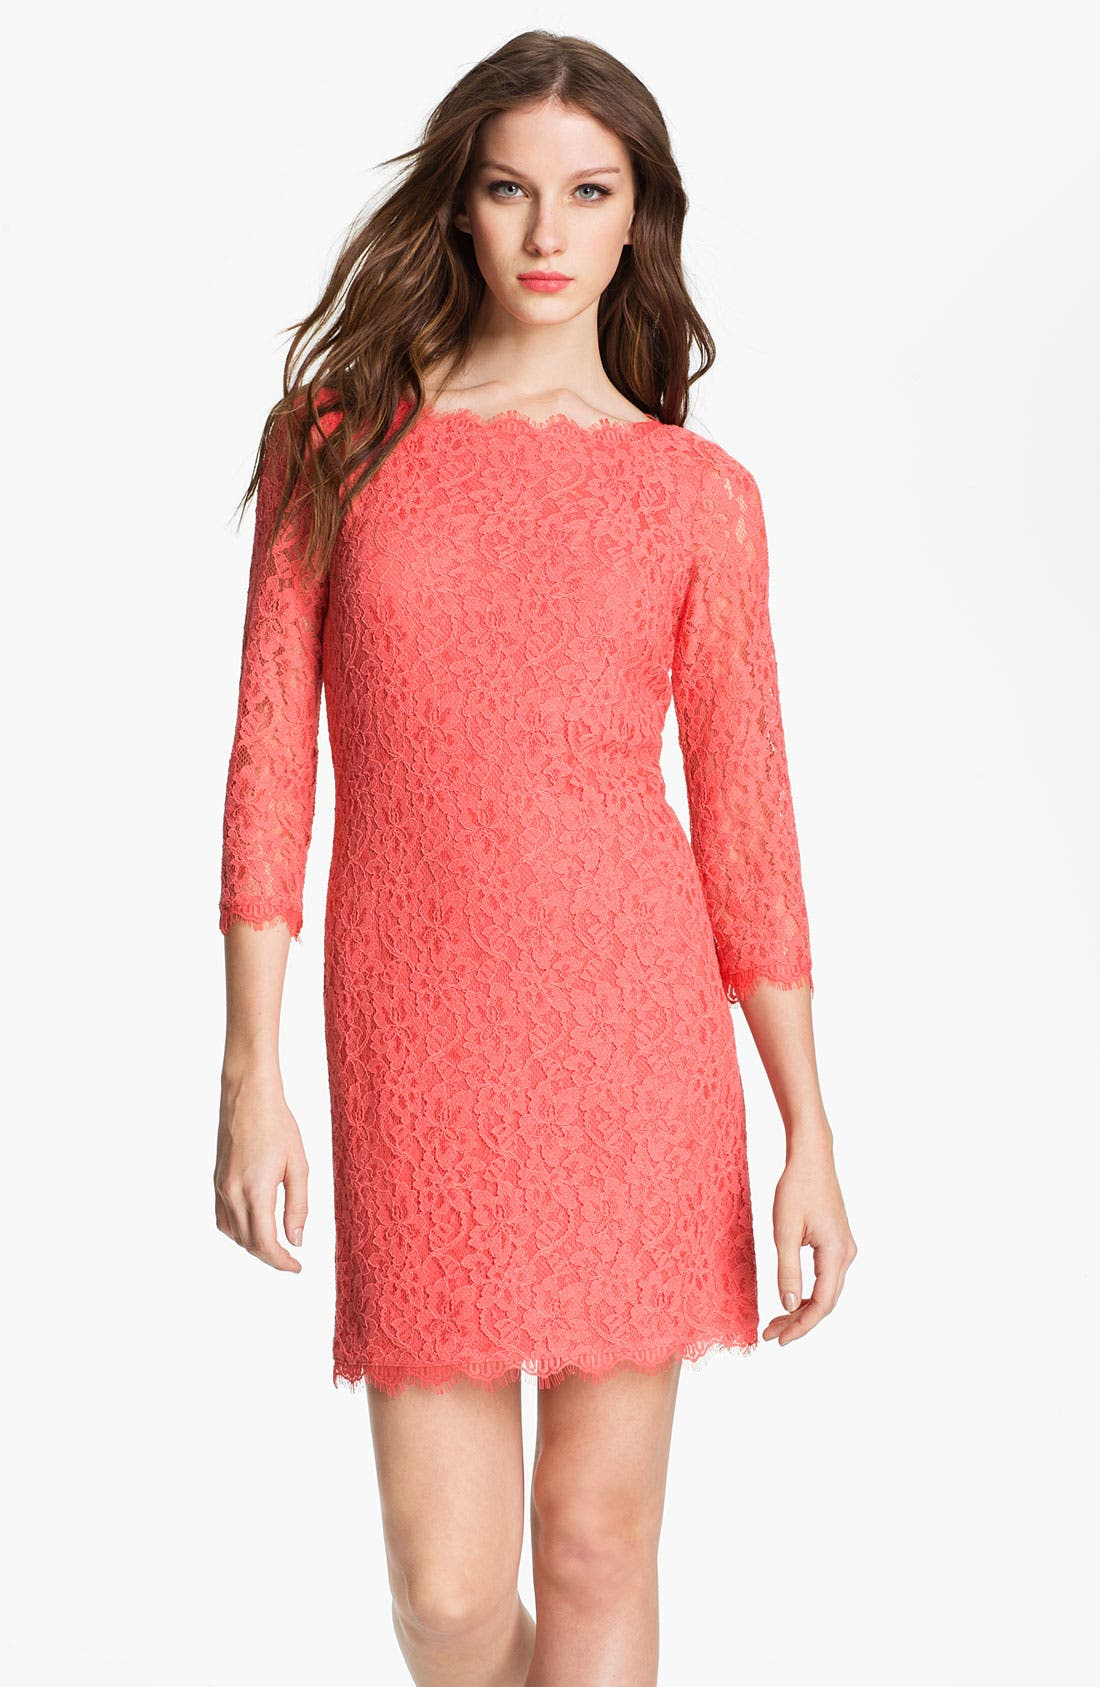 Main Image - Diane von Furstenberg 'Zarita' Lace Dress